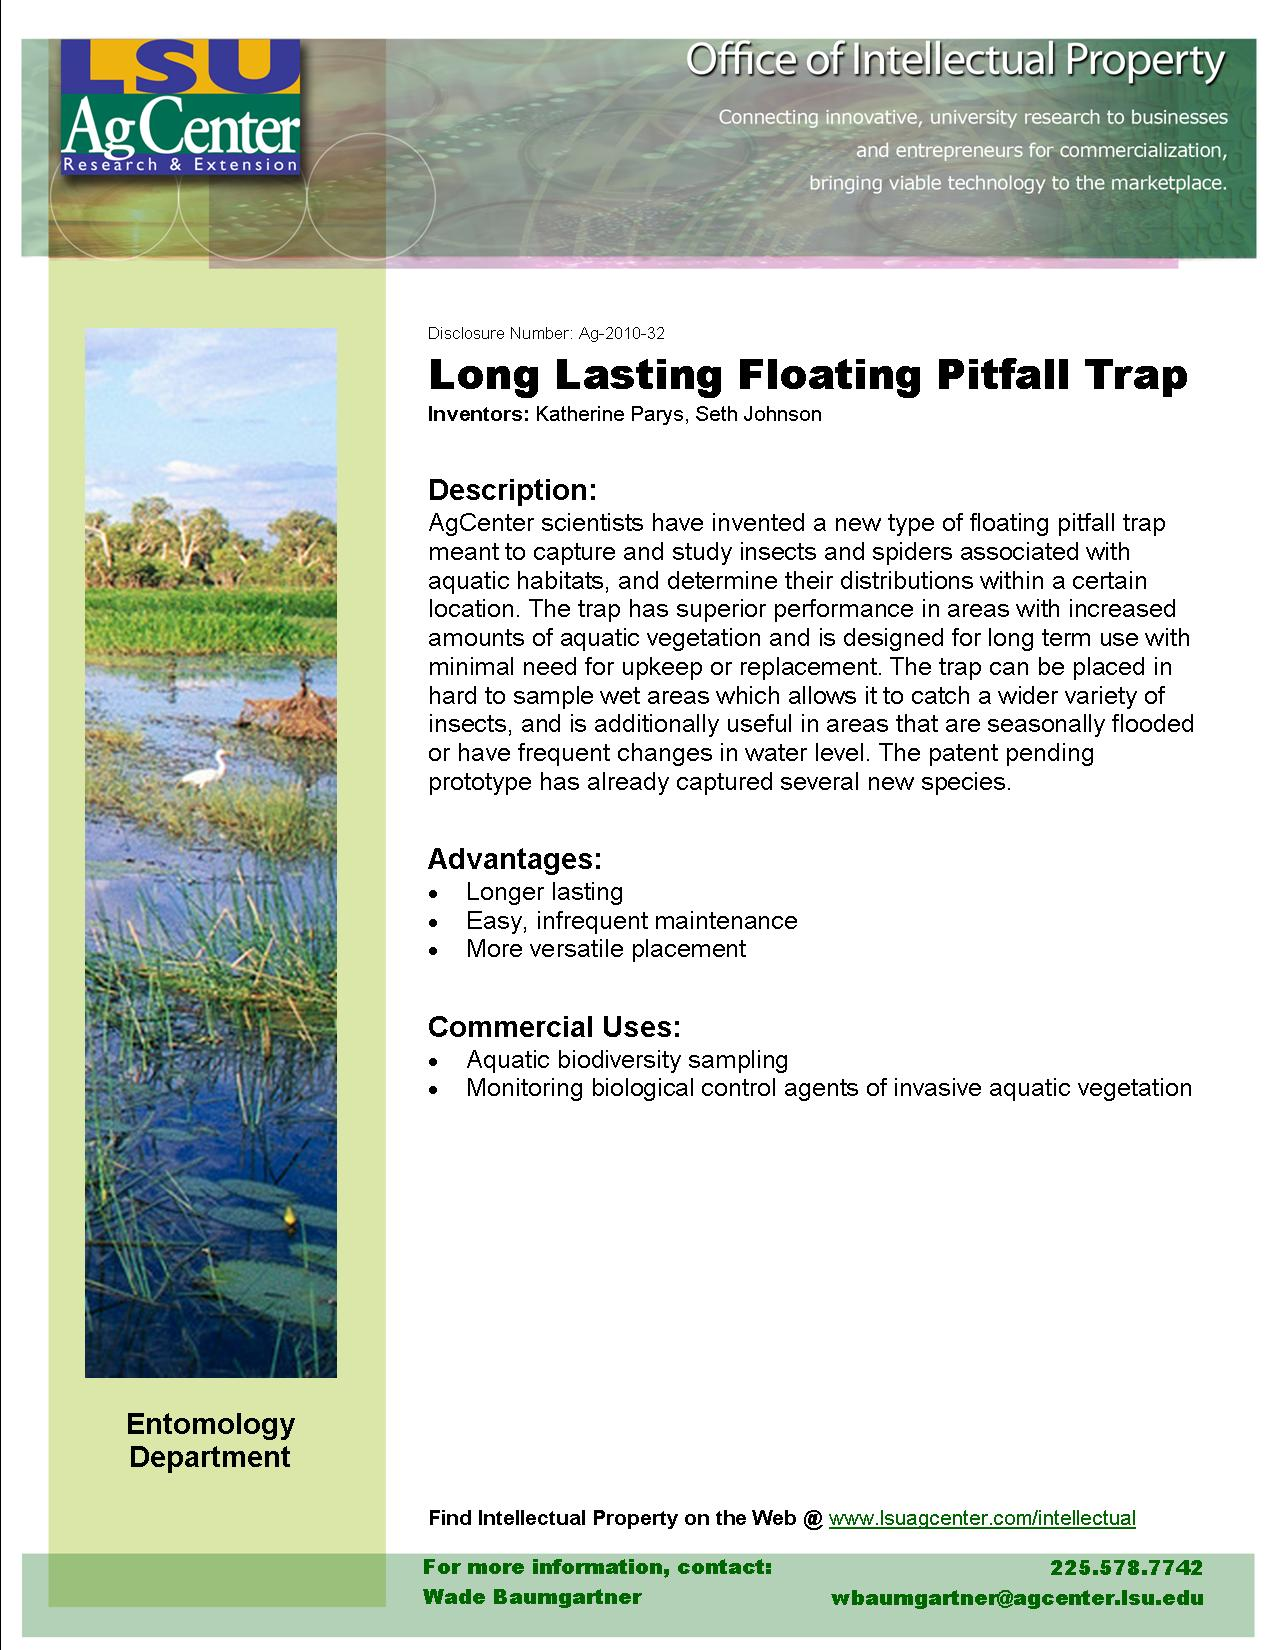 Long-lasting Floating Pitfall Trap